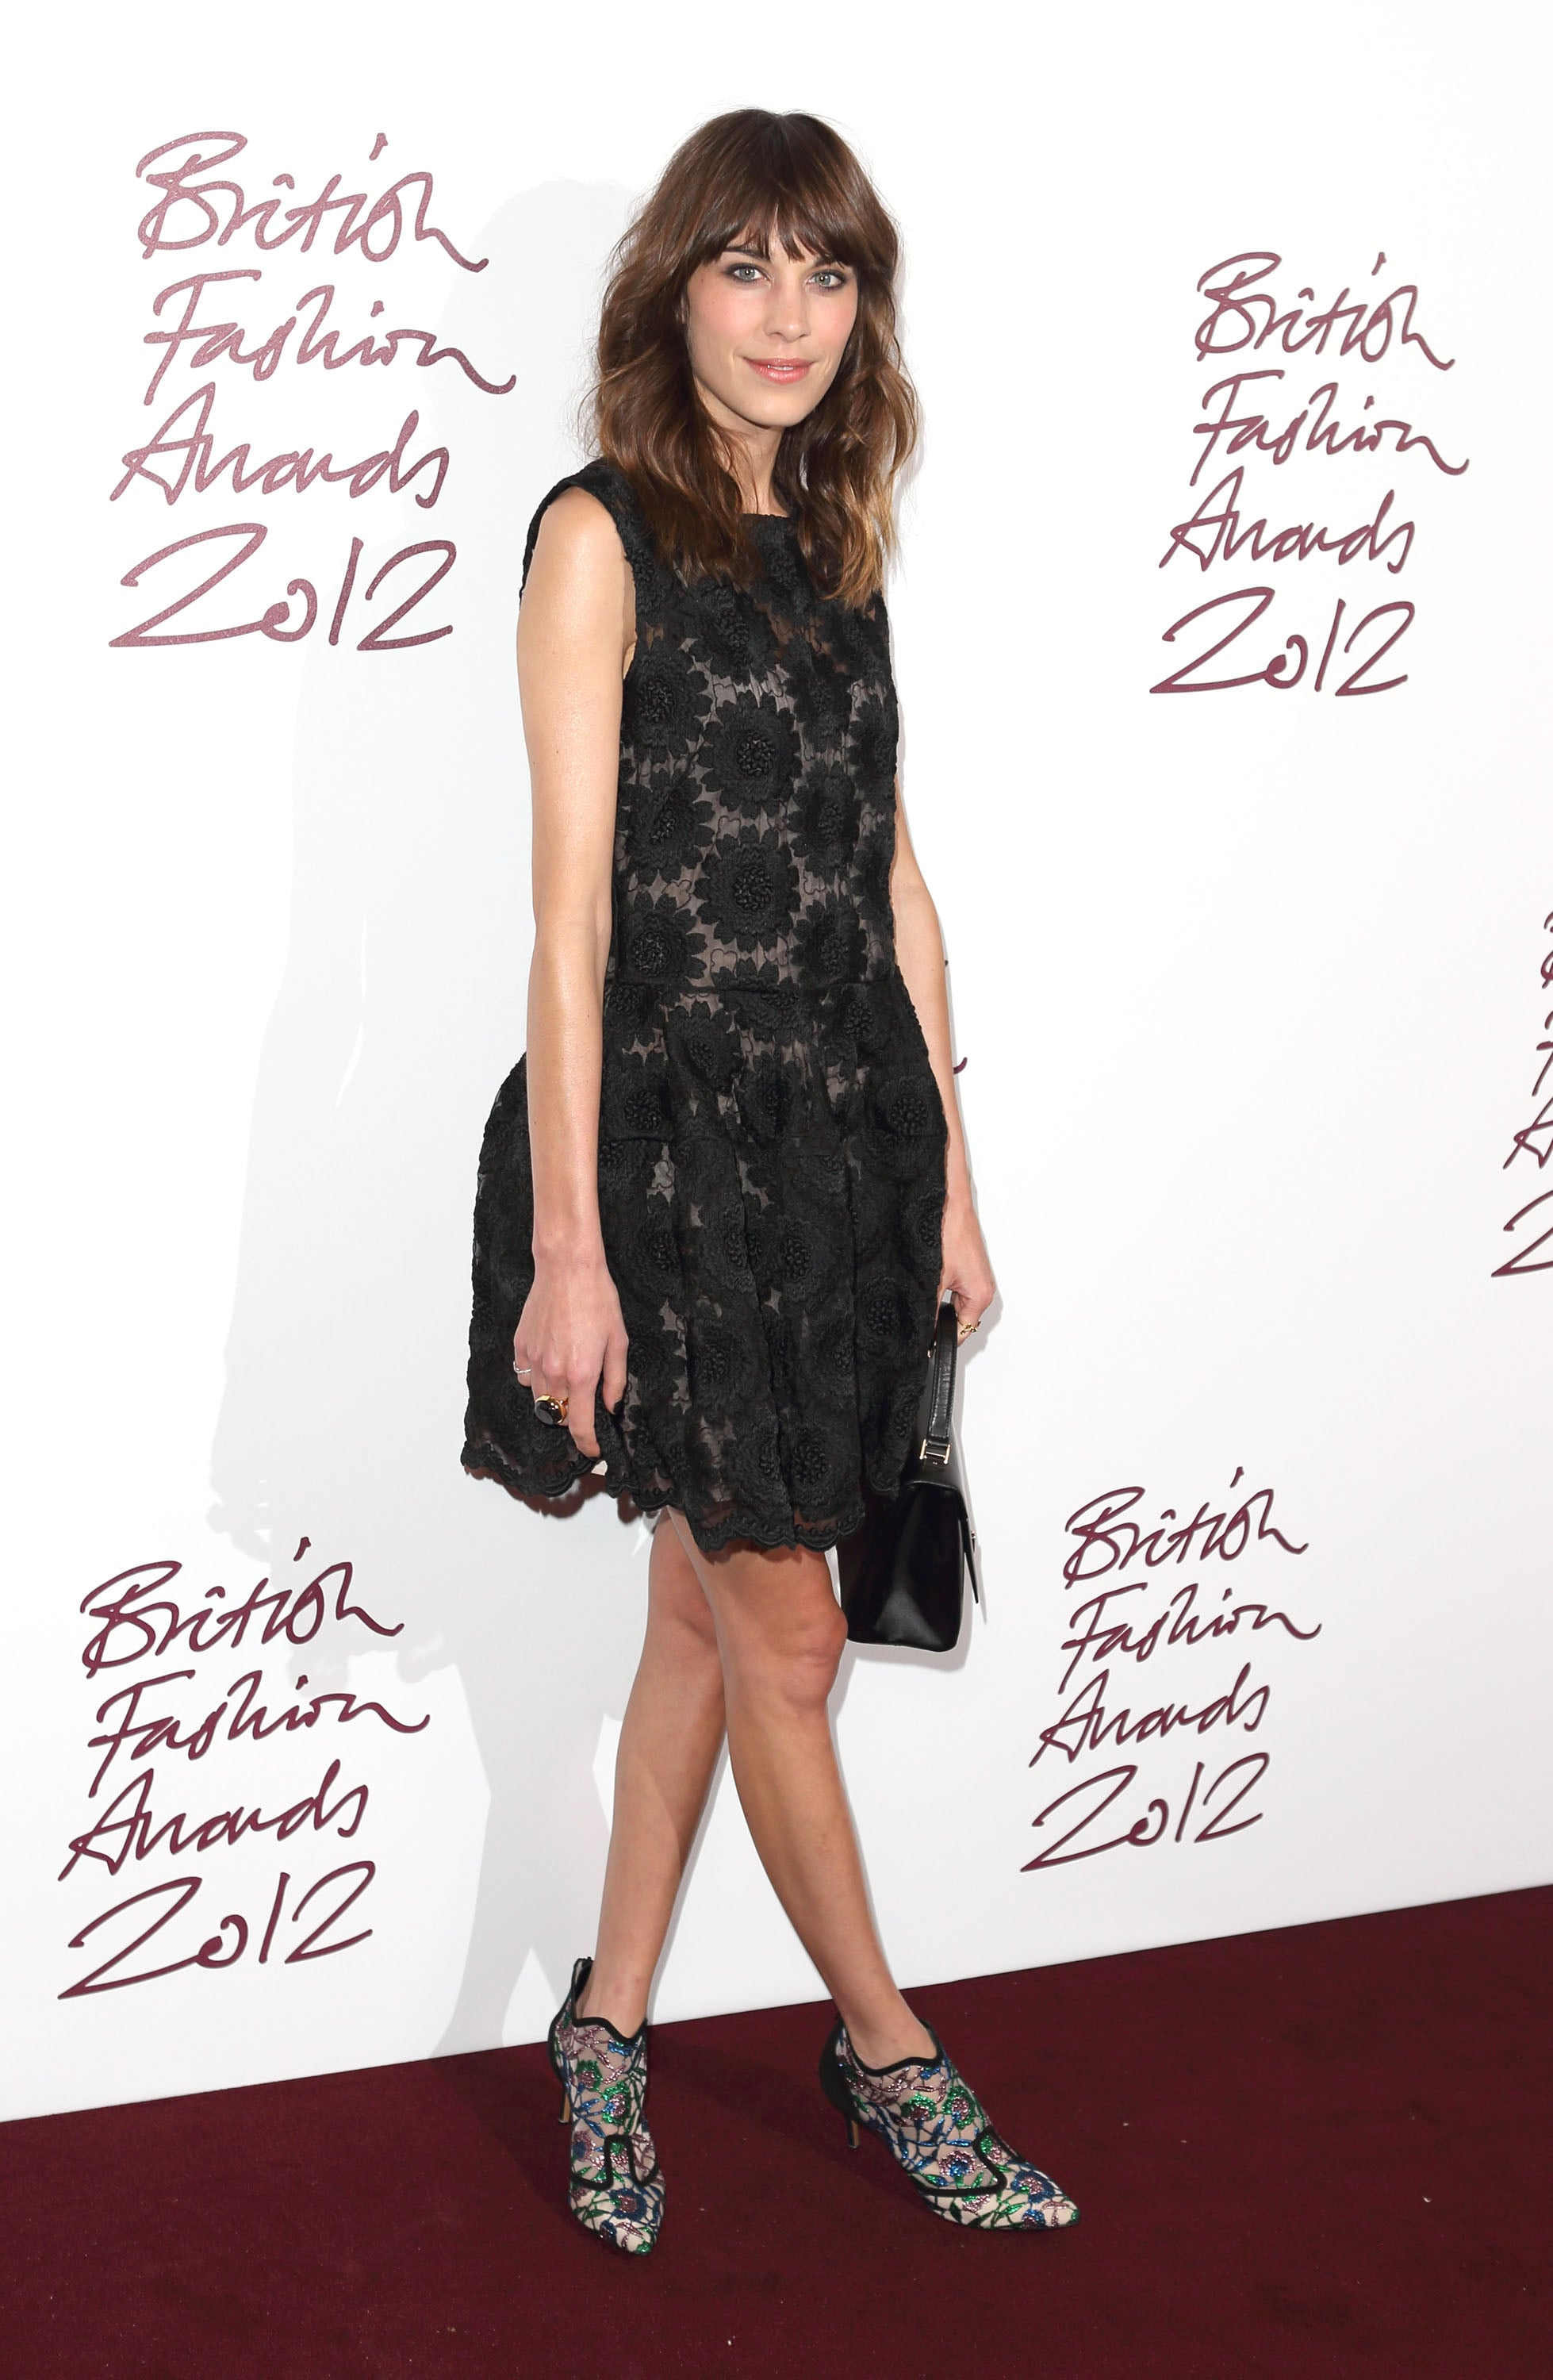 Alexa Chung's embroidered mesh Nicholas Kirkwood boots really elevated her look from simple to dazzling at the 2012 British Fashion Awards.